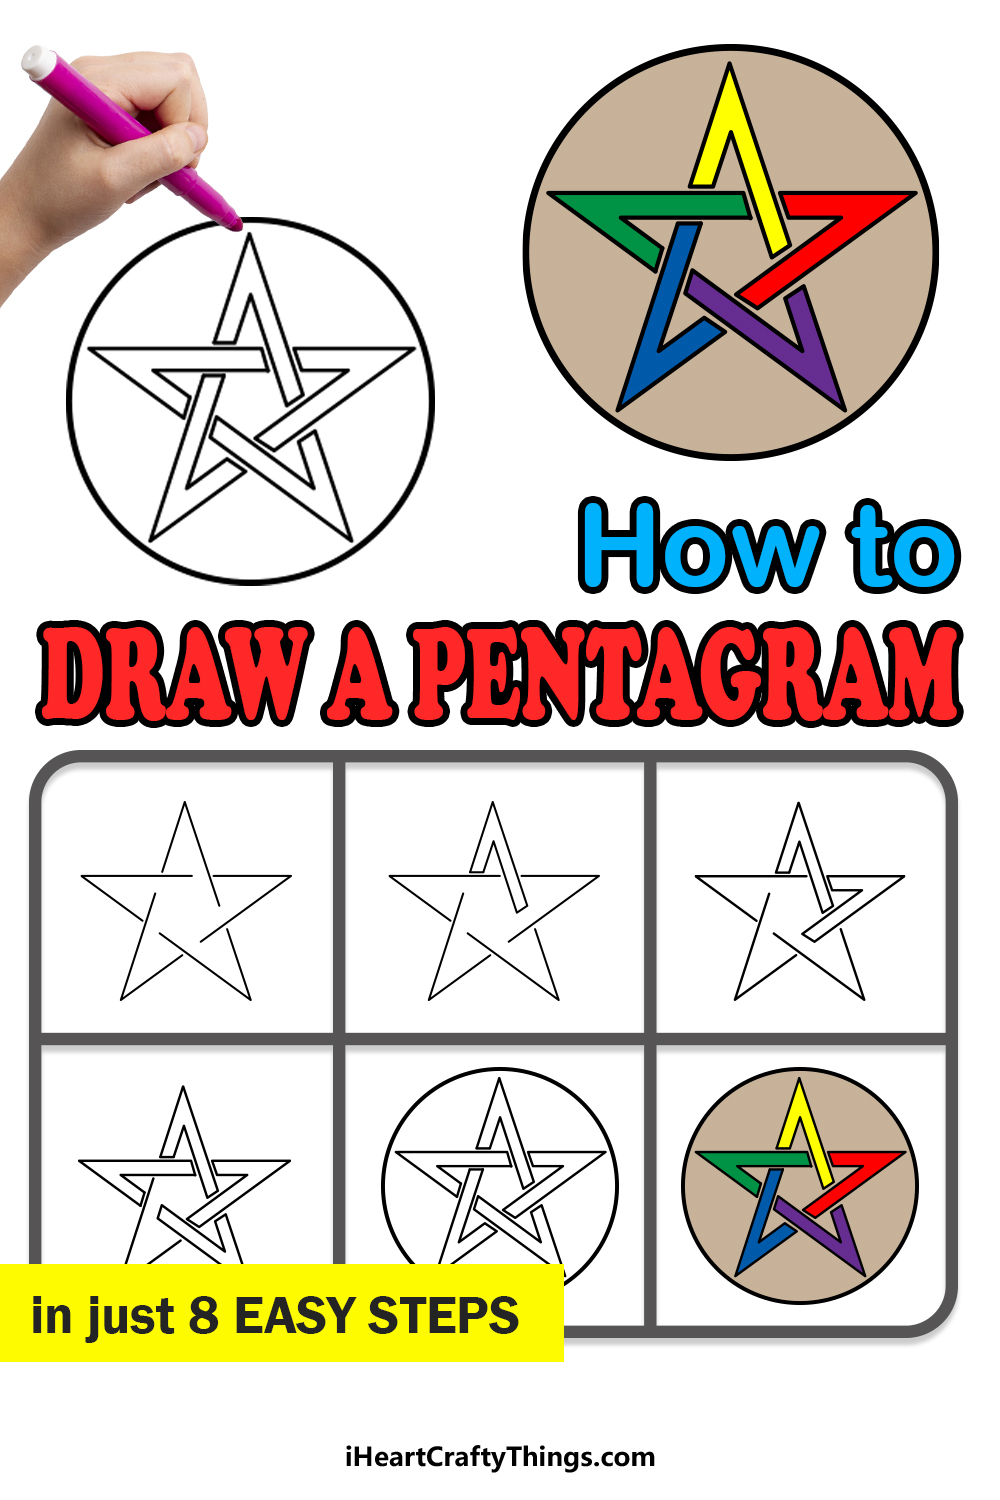 how to draw a pentagram in 8 easy steps